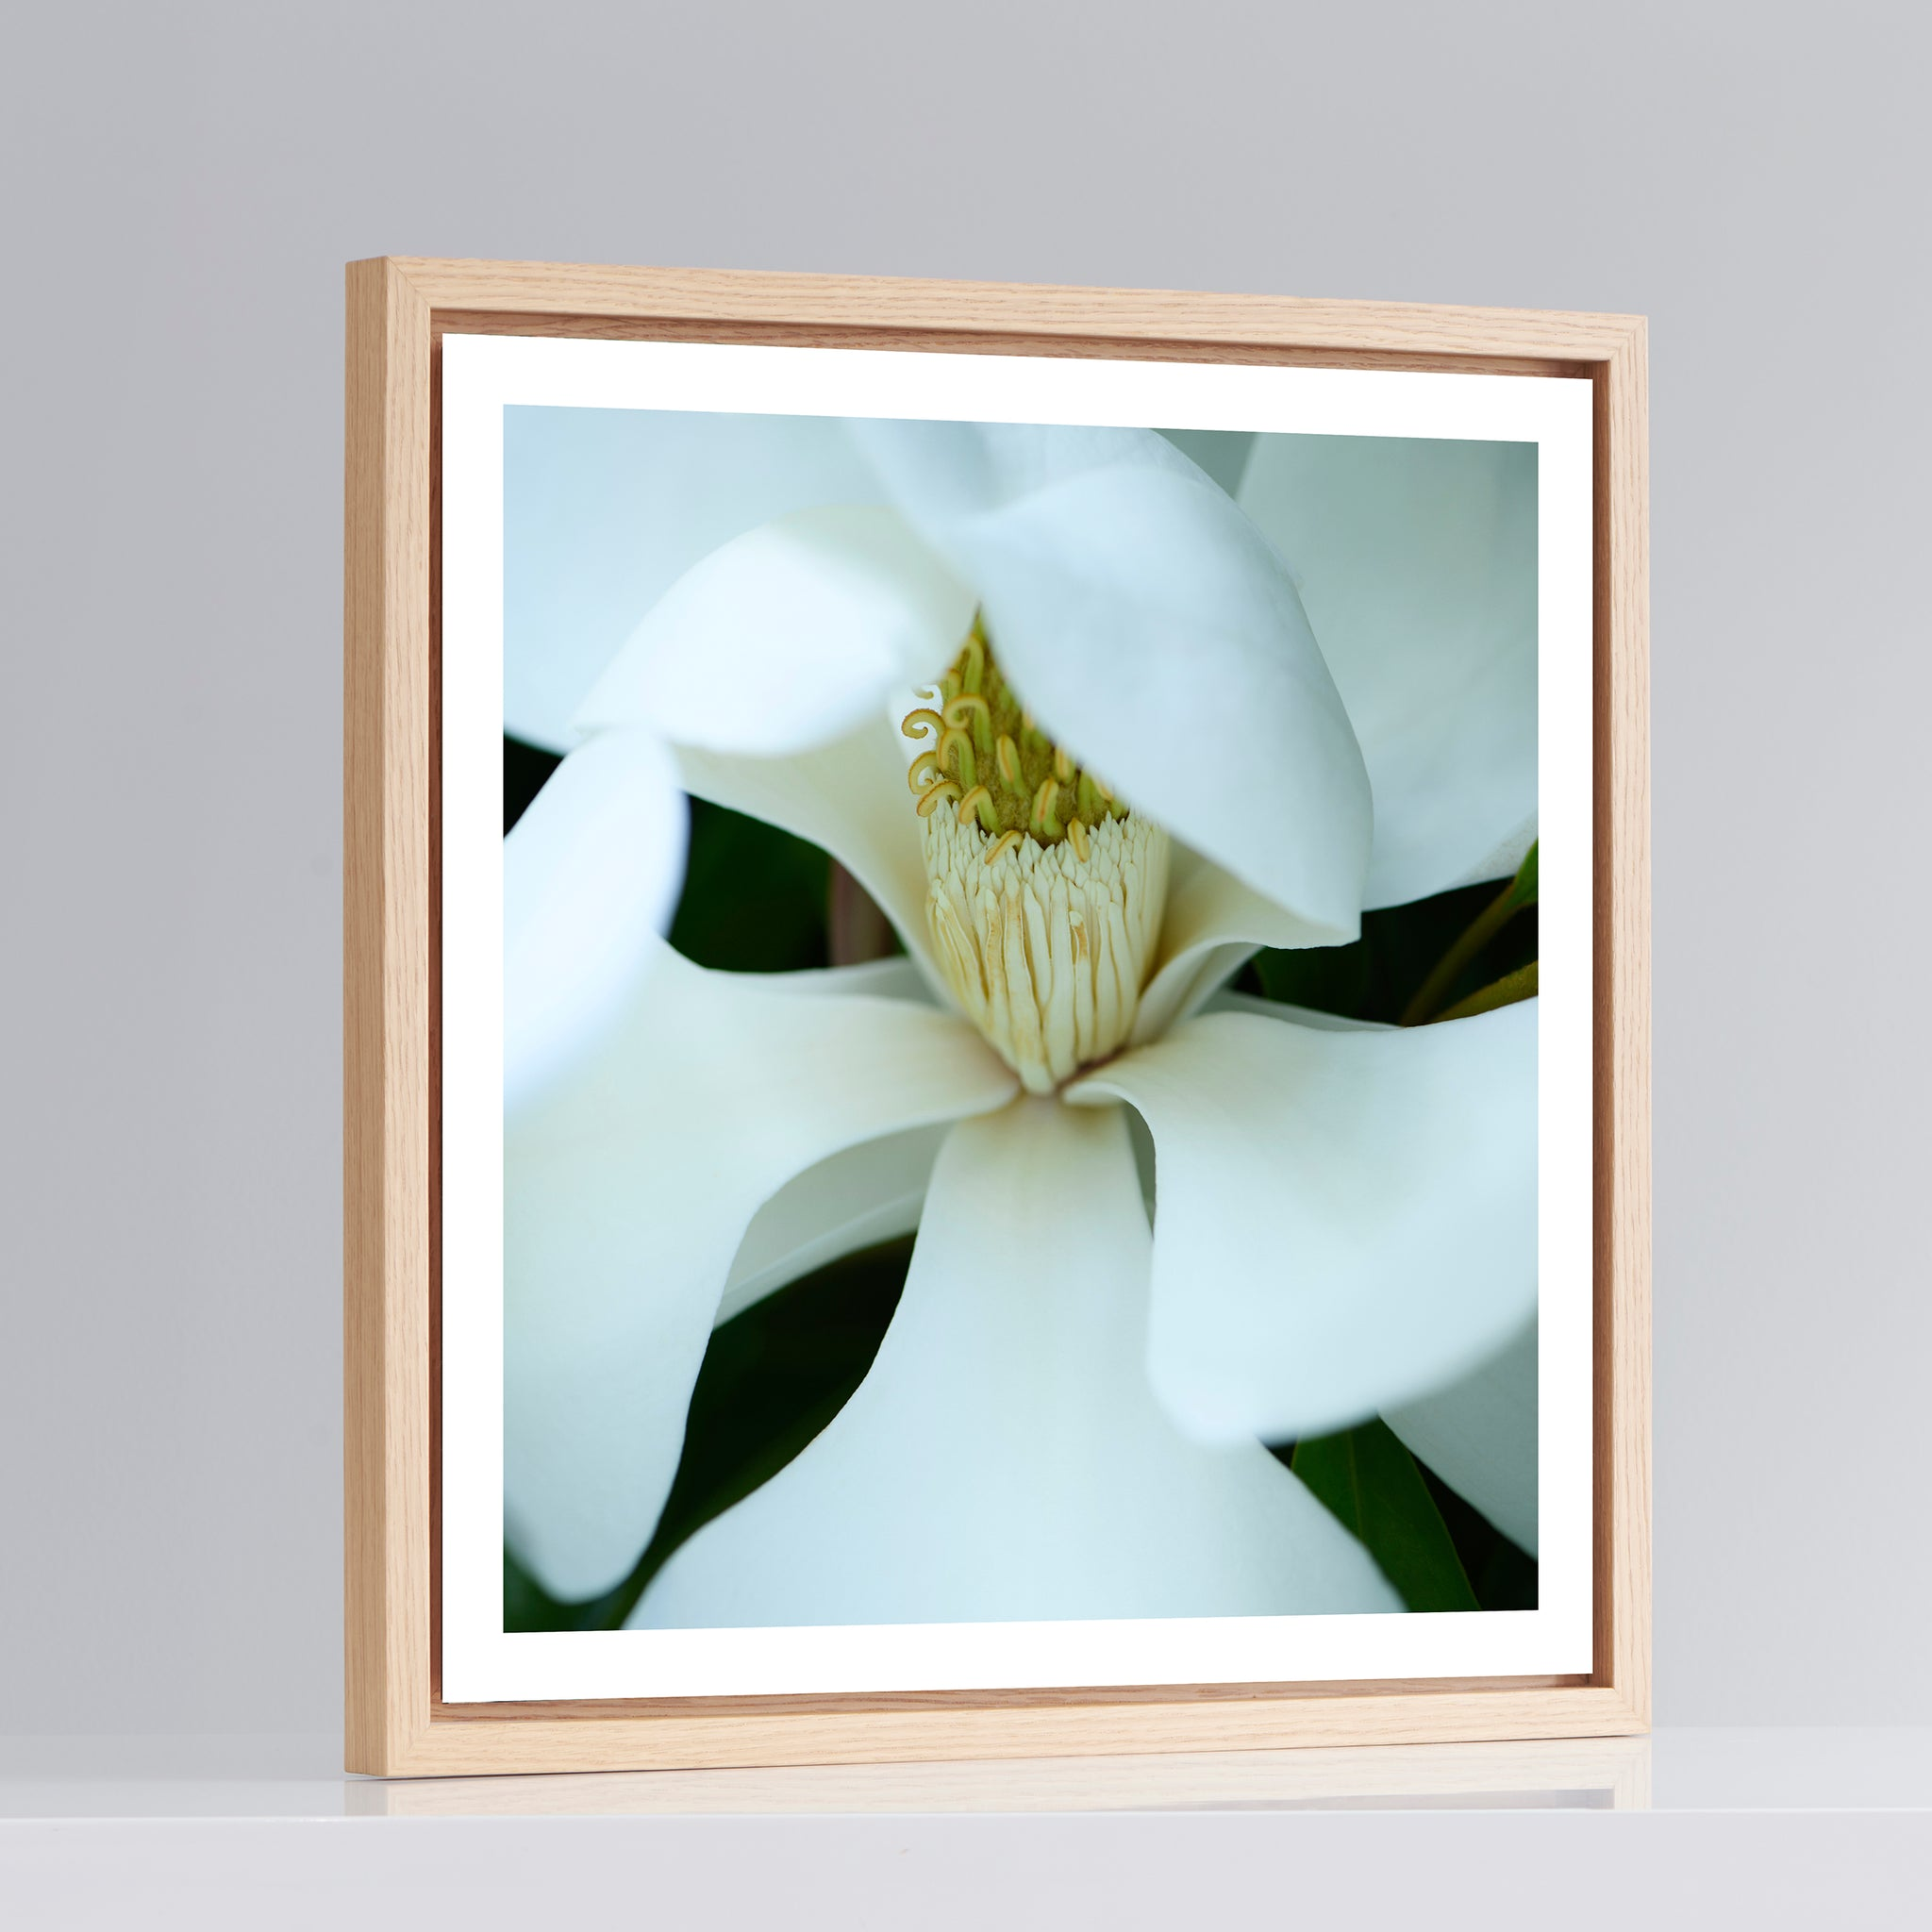 Evergreen Magnolia No2 - Photo Art with Natural Oak Frame